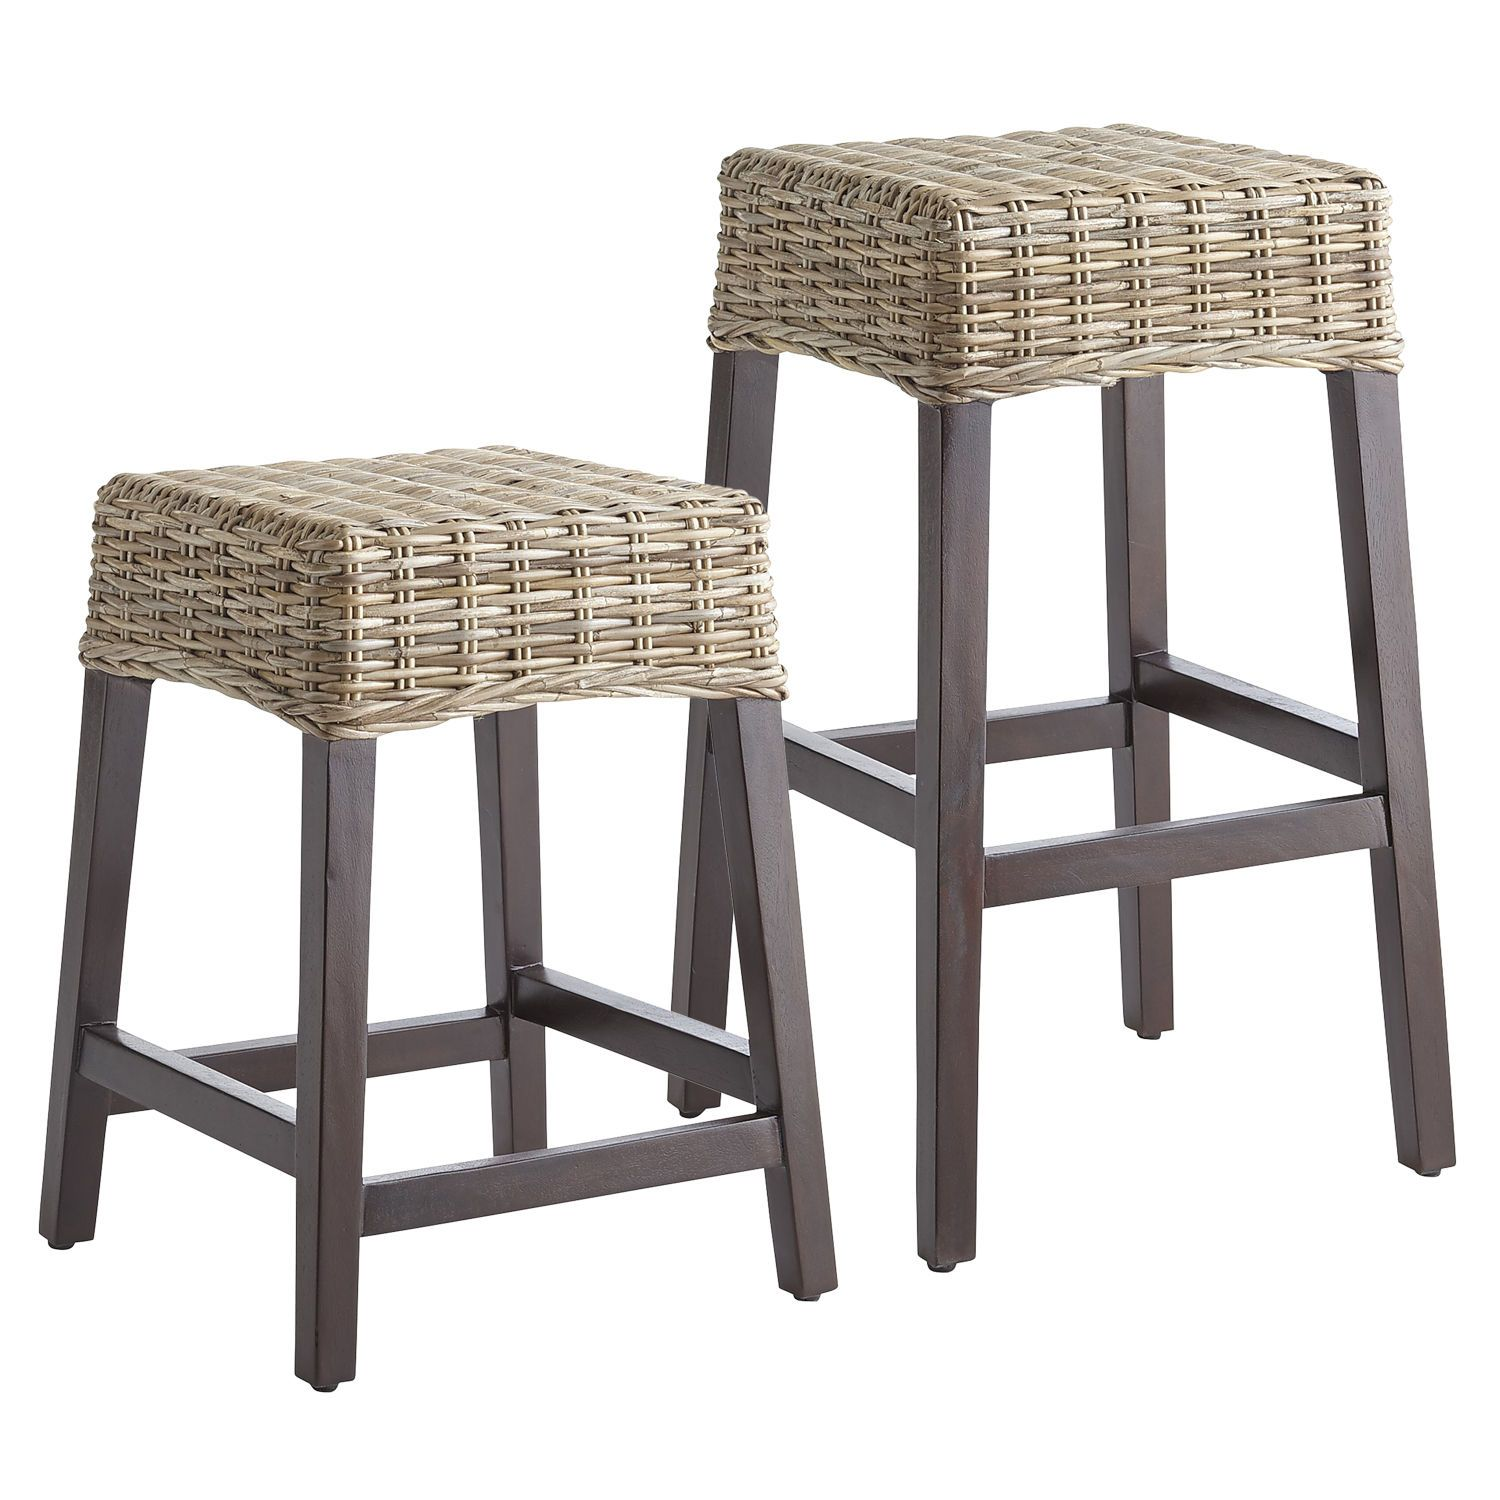 Admirable Kubu Backless Bar Counter Stools Pier 1 Imports Andrewgaddart Wooden Chair Designs For Living Room Andrewgaddartcom